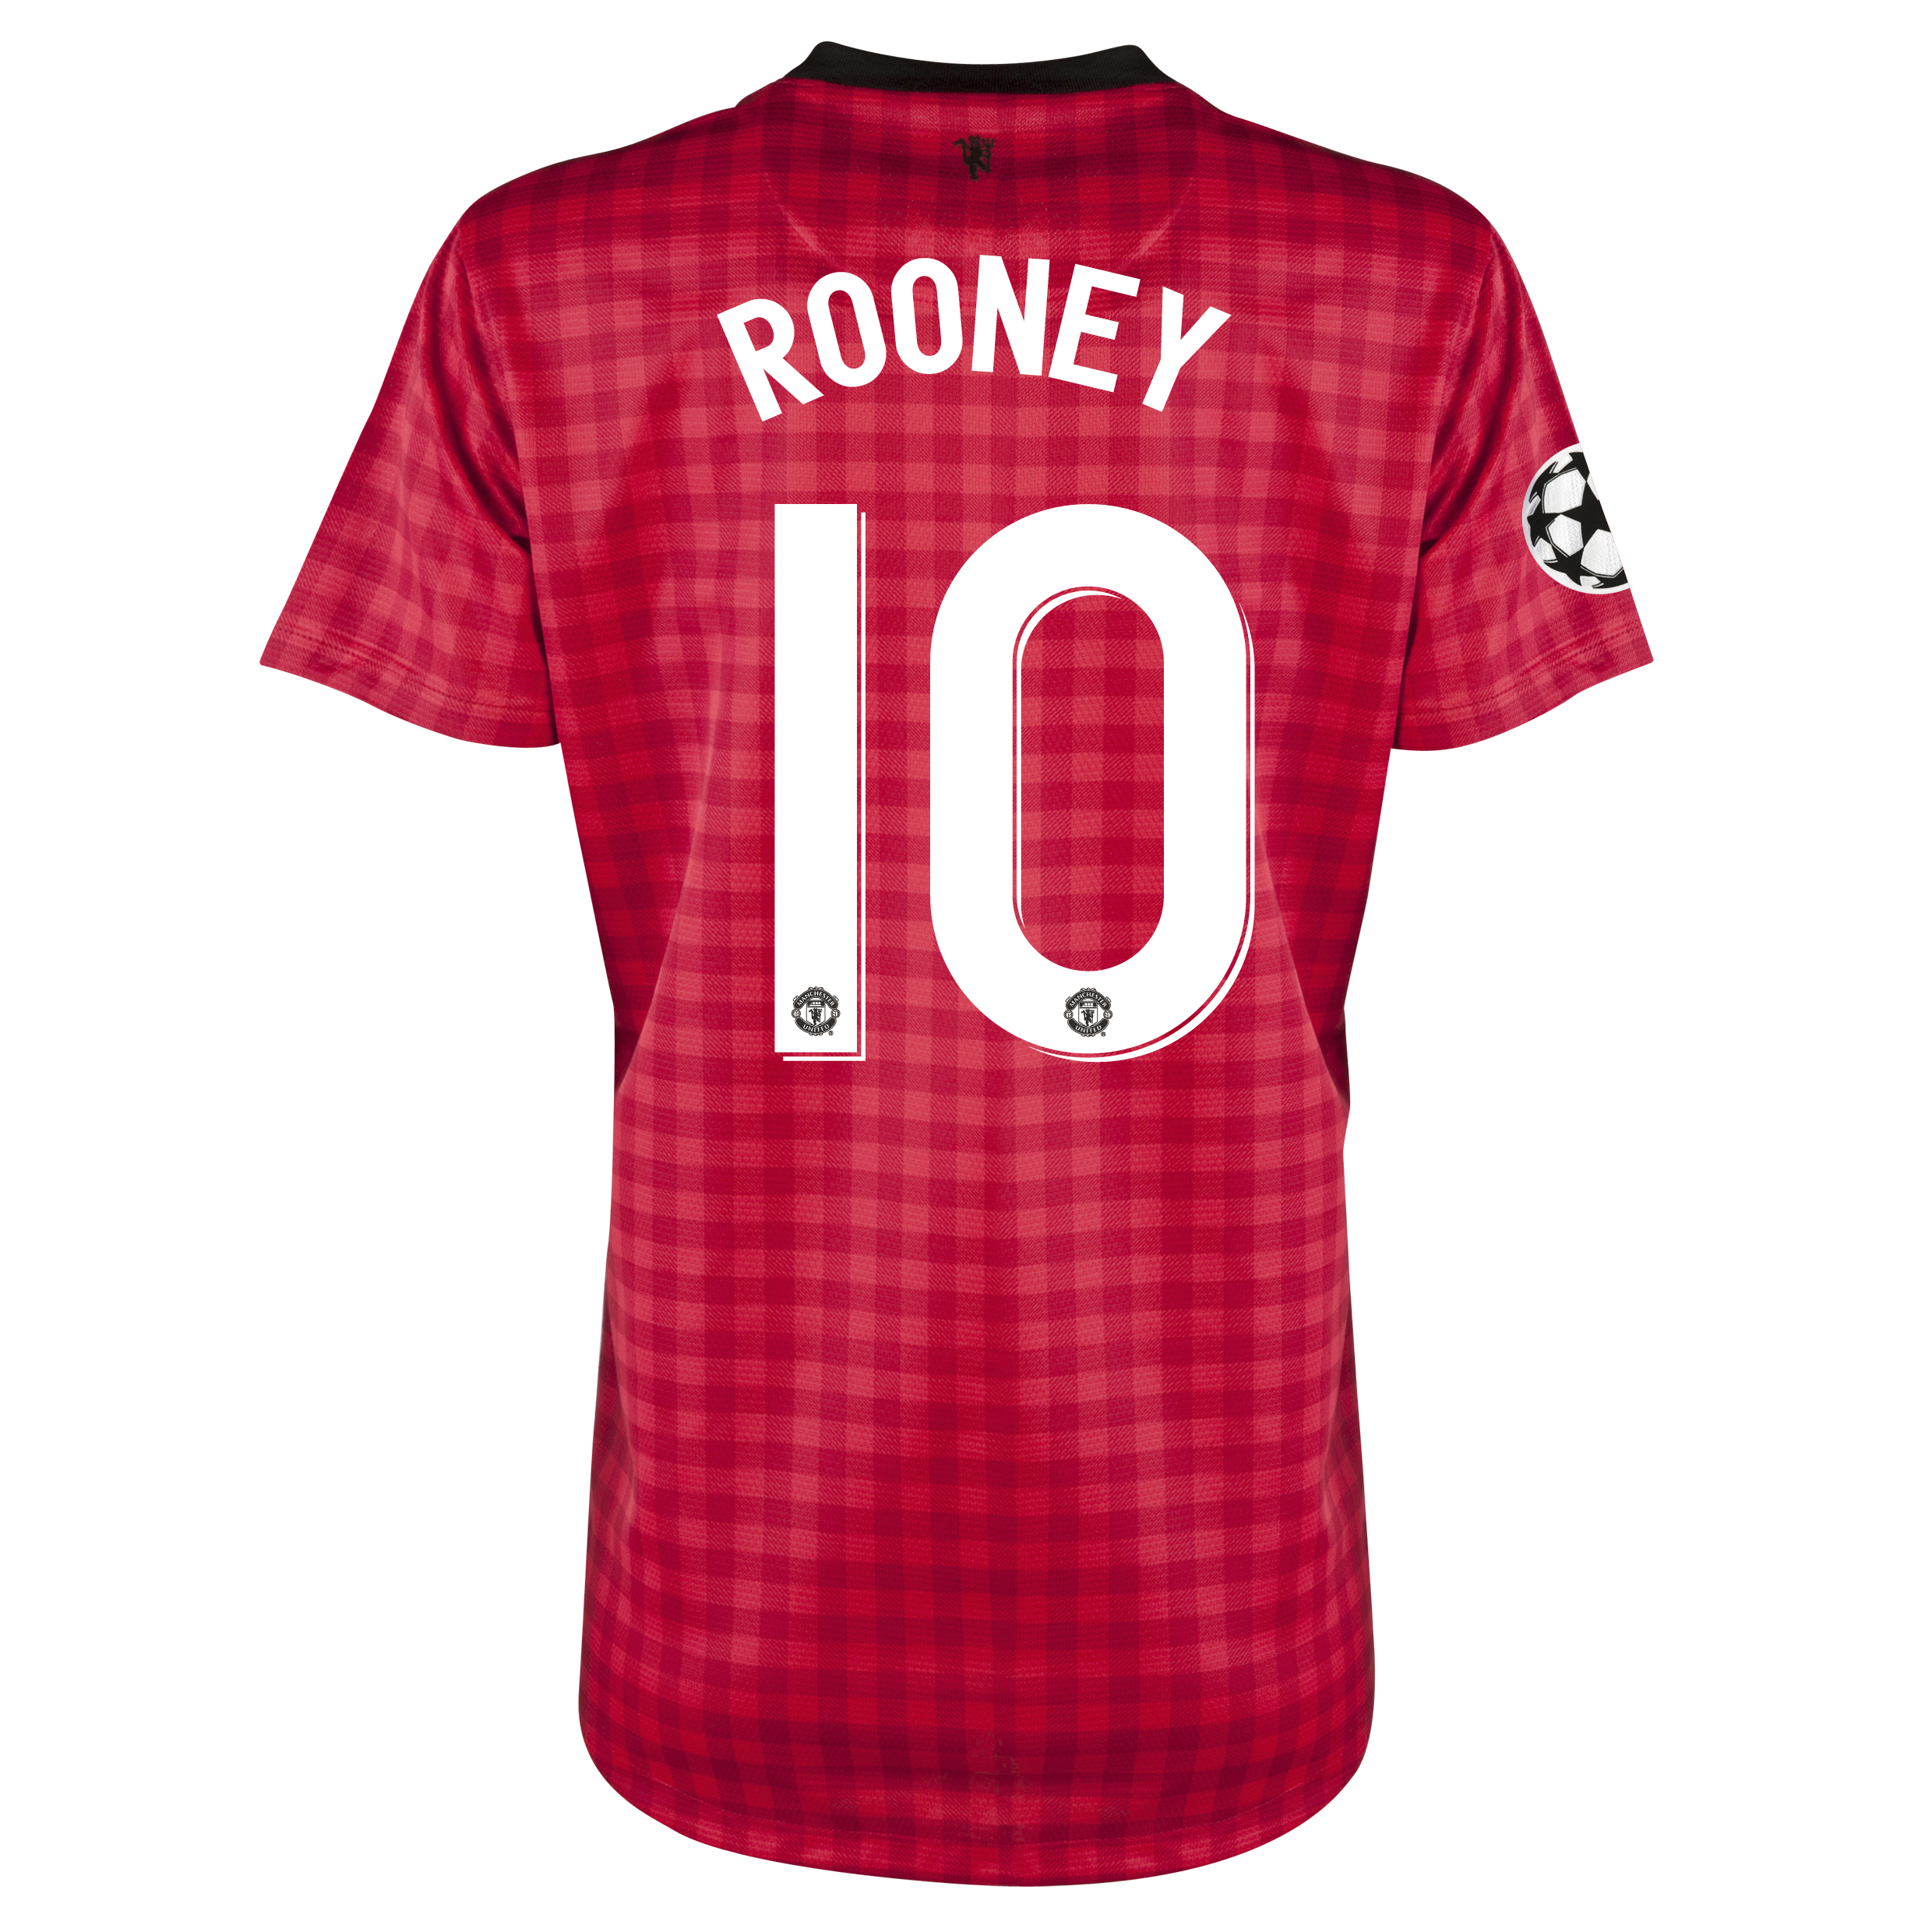 Man United UEFA Champions League Home Shirt 2012/13 - Womens with Rooney 10 printing